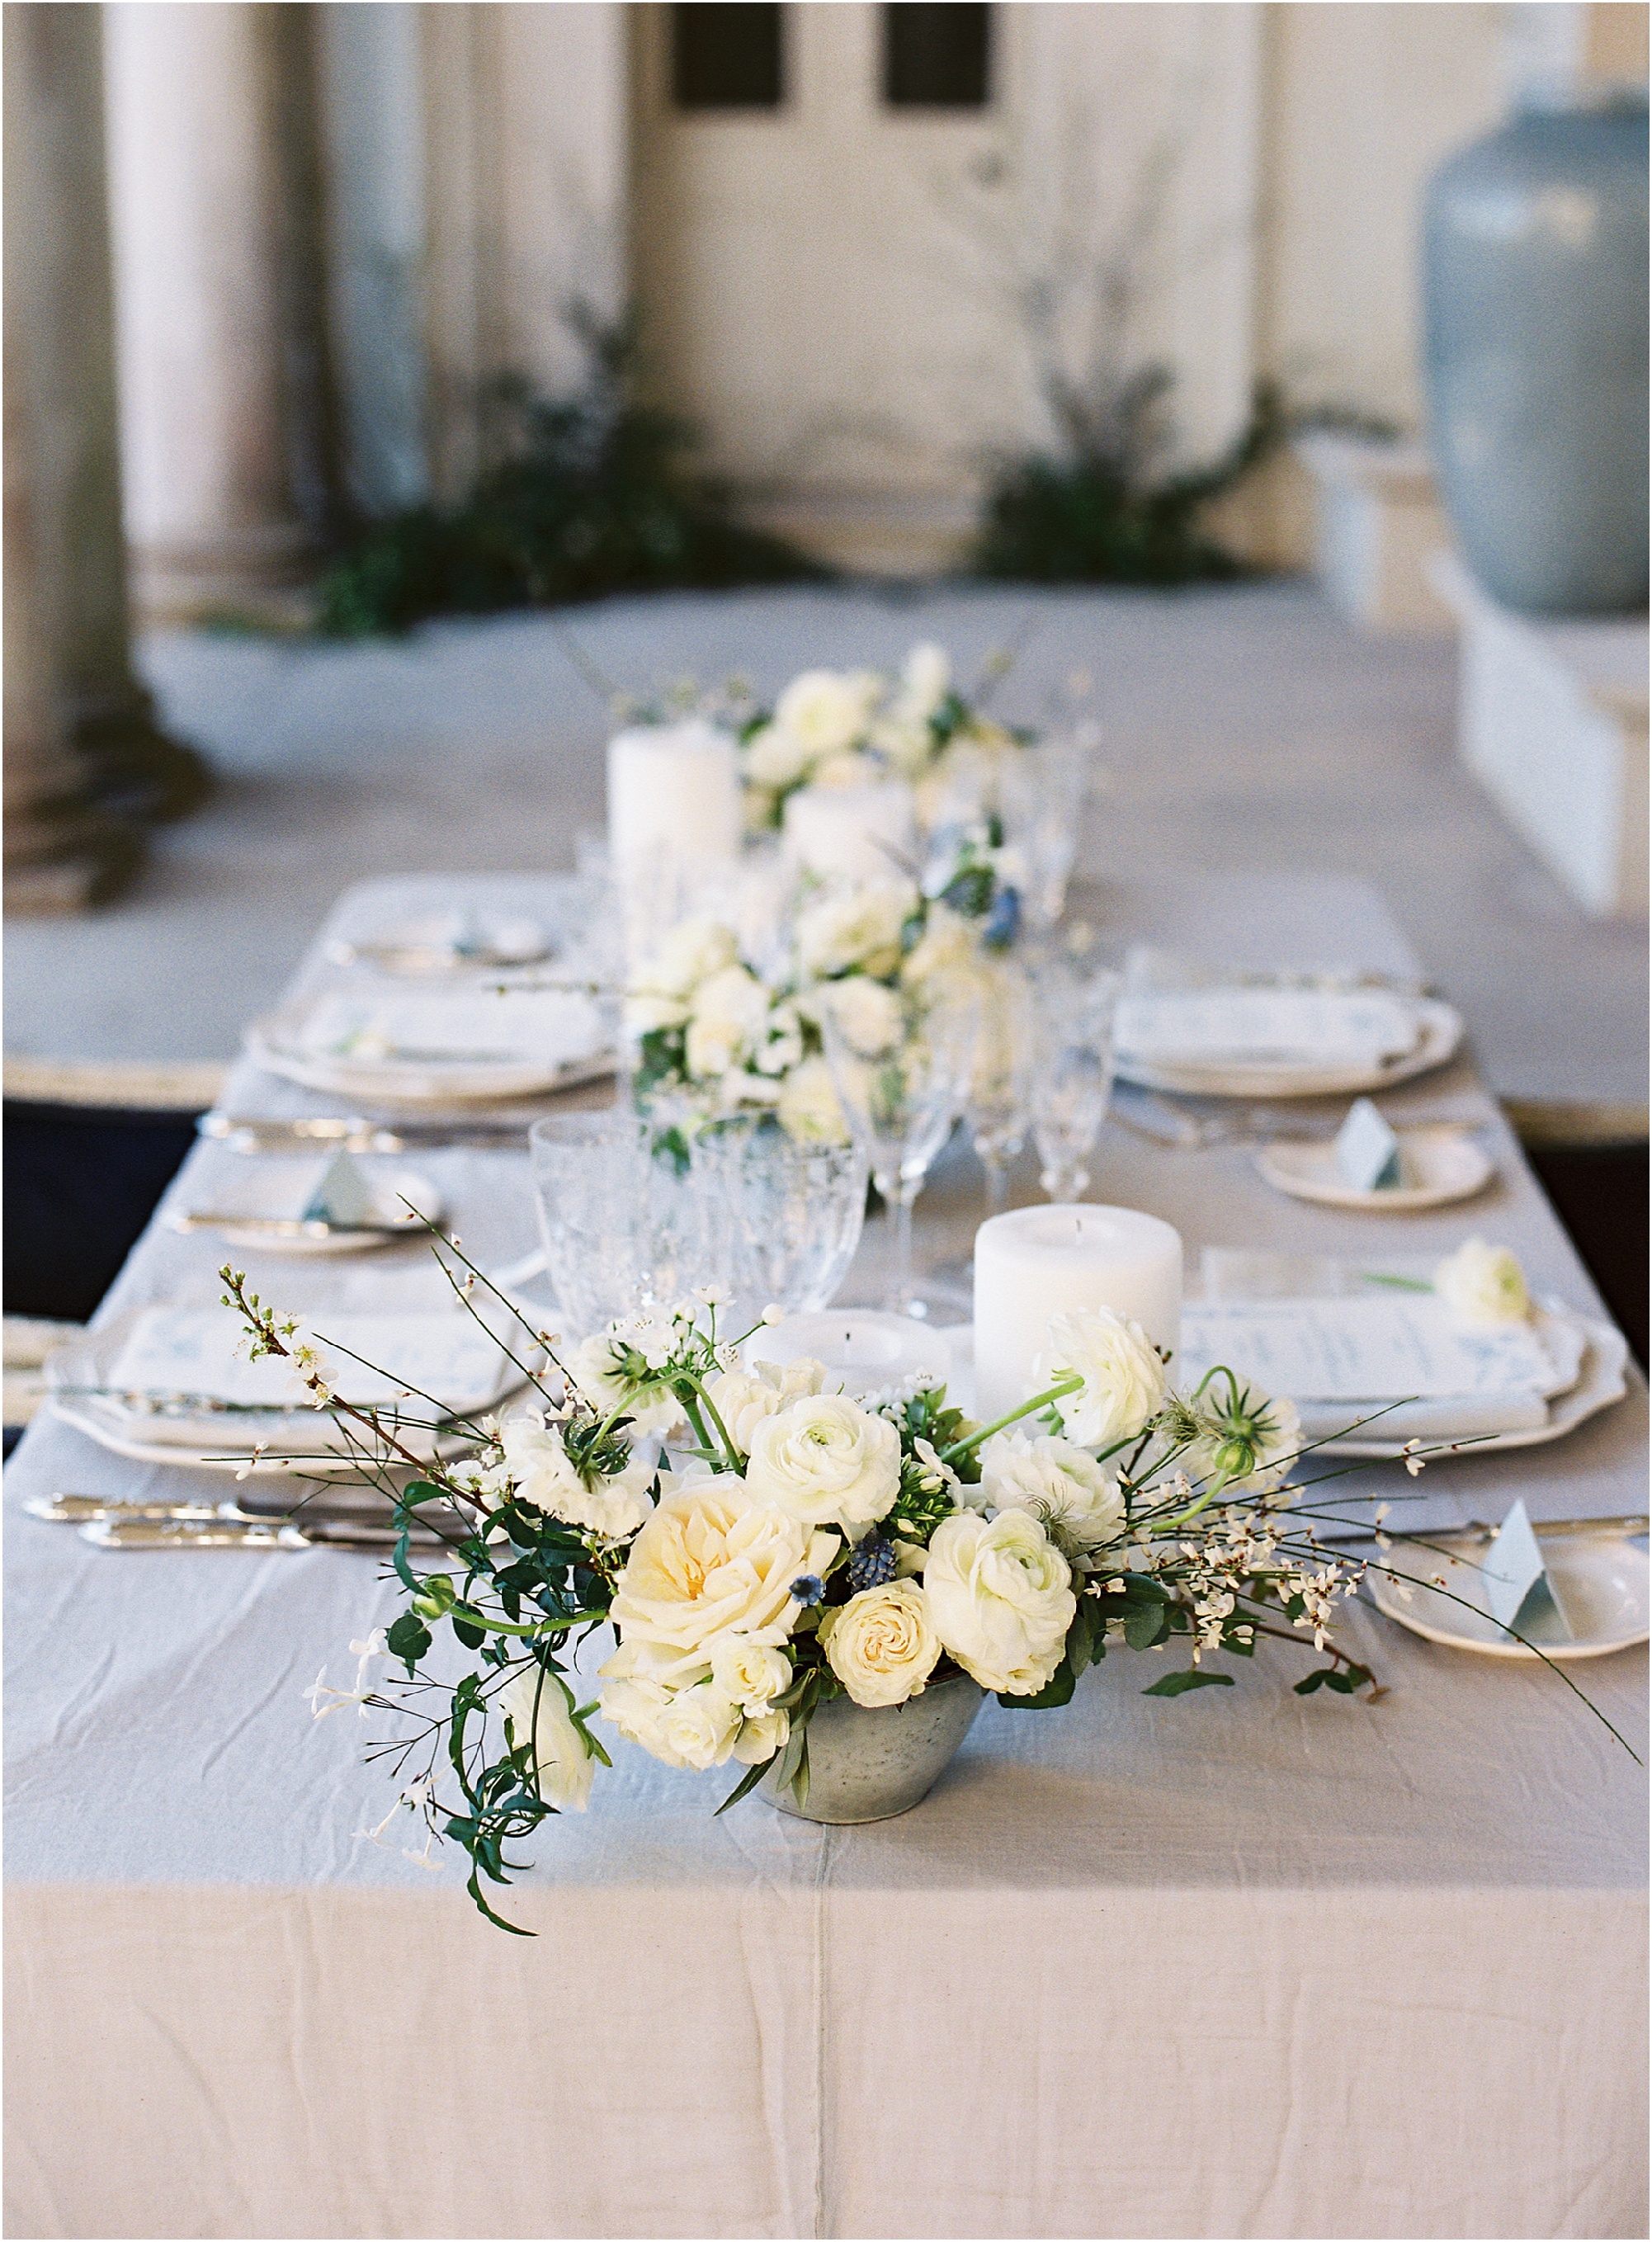 White, green and grey colour scheme for wedding breakfast table